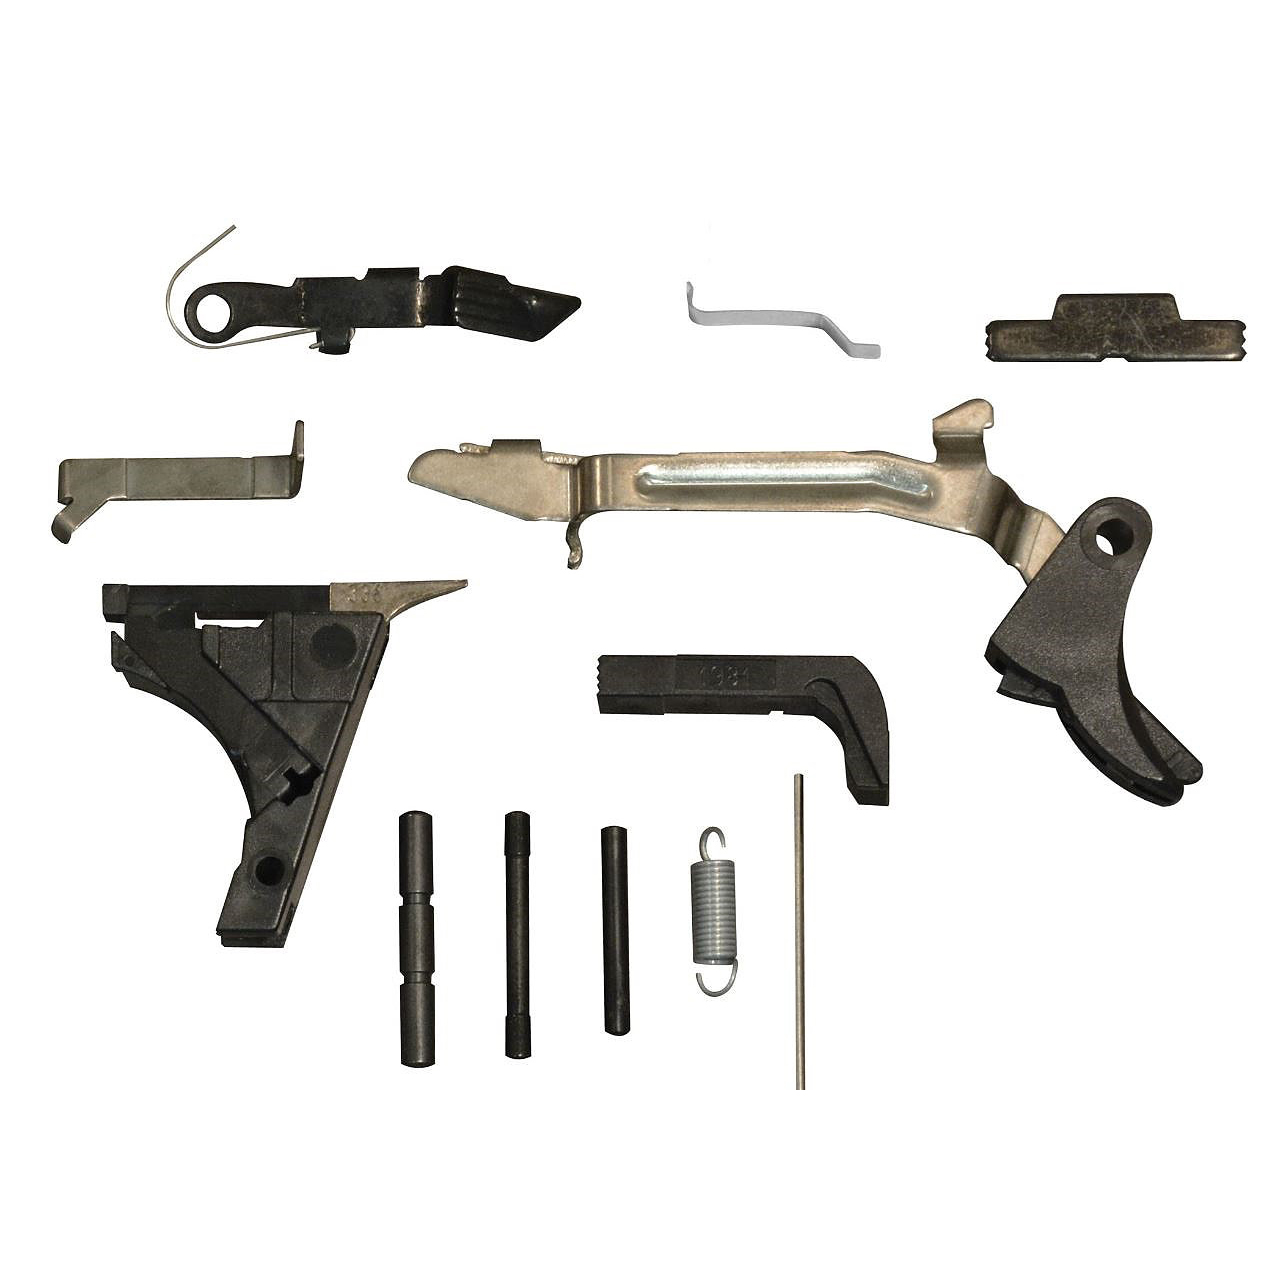 Competition Kits - Whether you're starting from scratch or just need to replace some parts; we offer lower and upper parts accessories. Want to fine tune? We also have ready-to-ship upgrade parts from your favorite manufactures like Zev & Agency Arms.